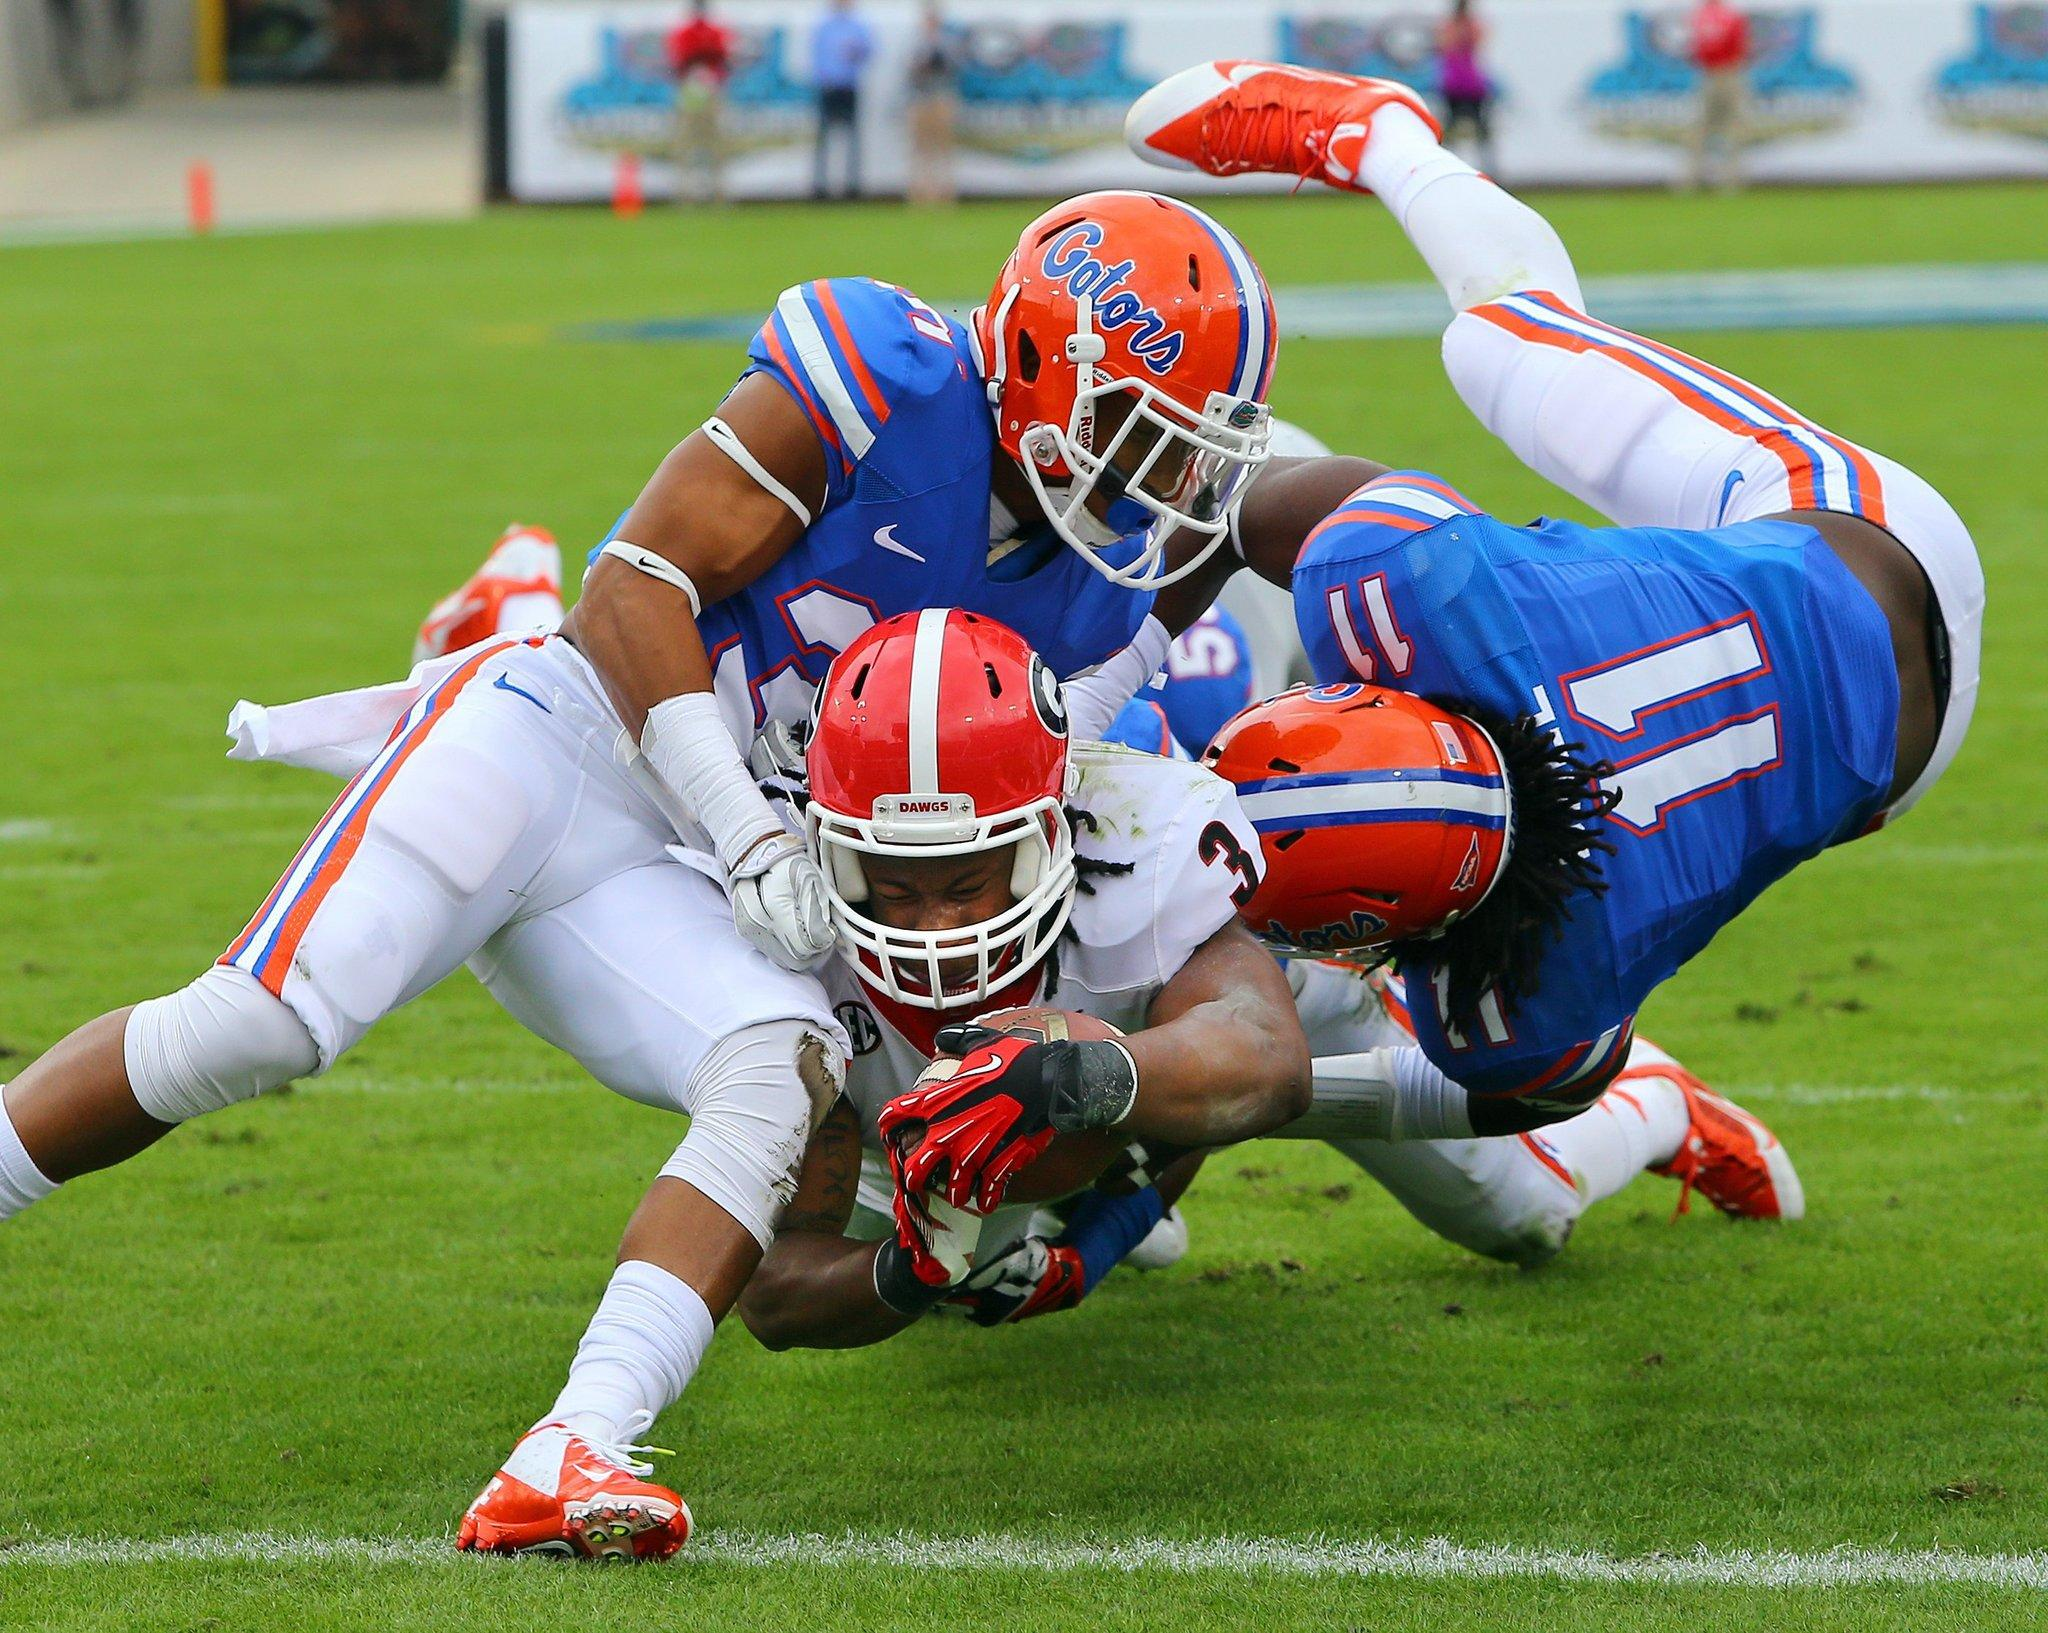 Georgia tailback Todd Gurley plows his way into the end zone between Florida defenders Cody Riggs, left, and Neiron Ball, right, during the first quarter at EverBank Field in Jacksonville, Fla.